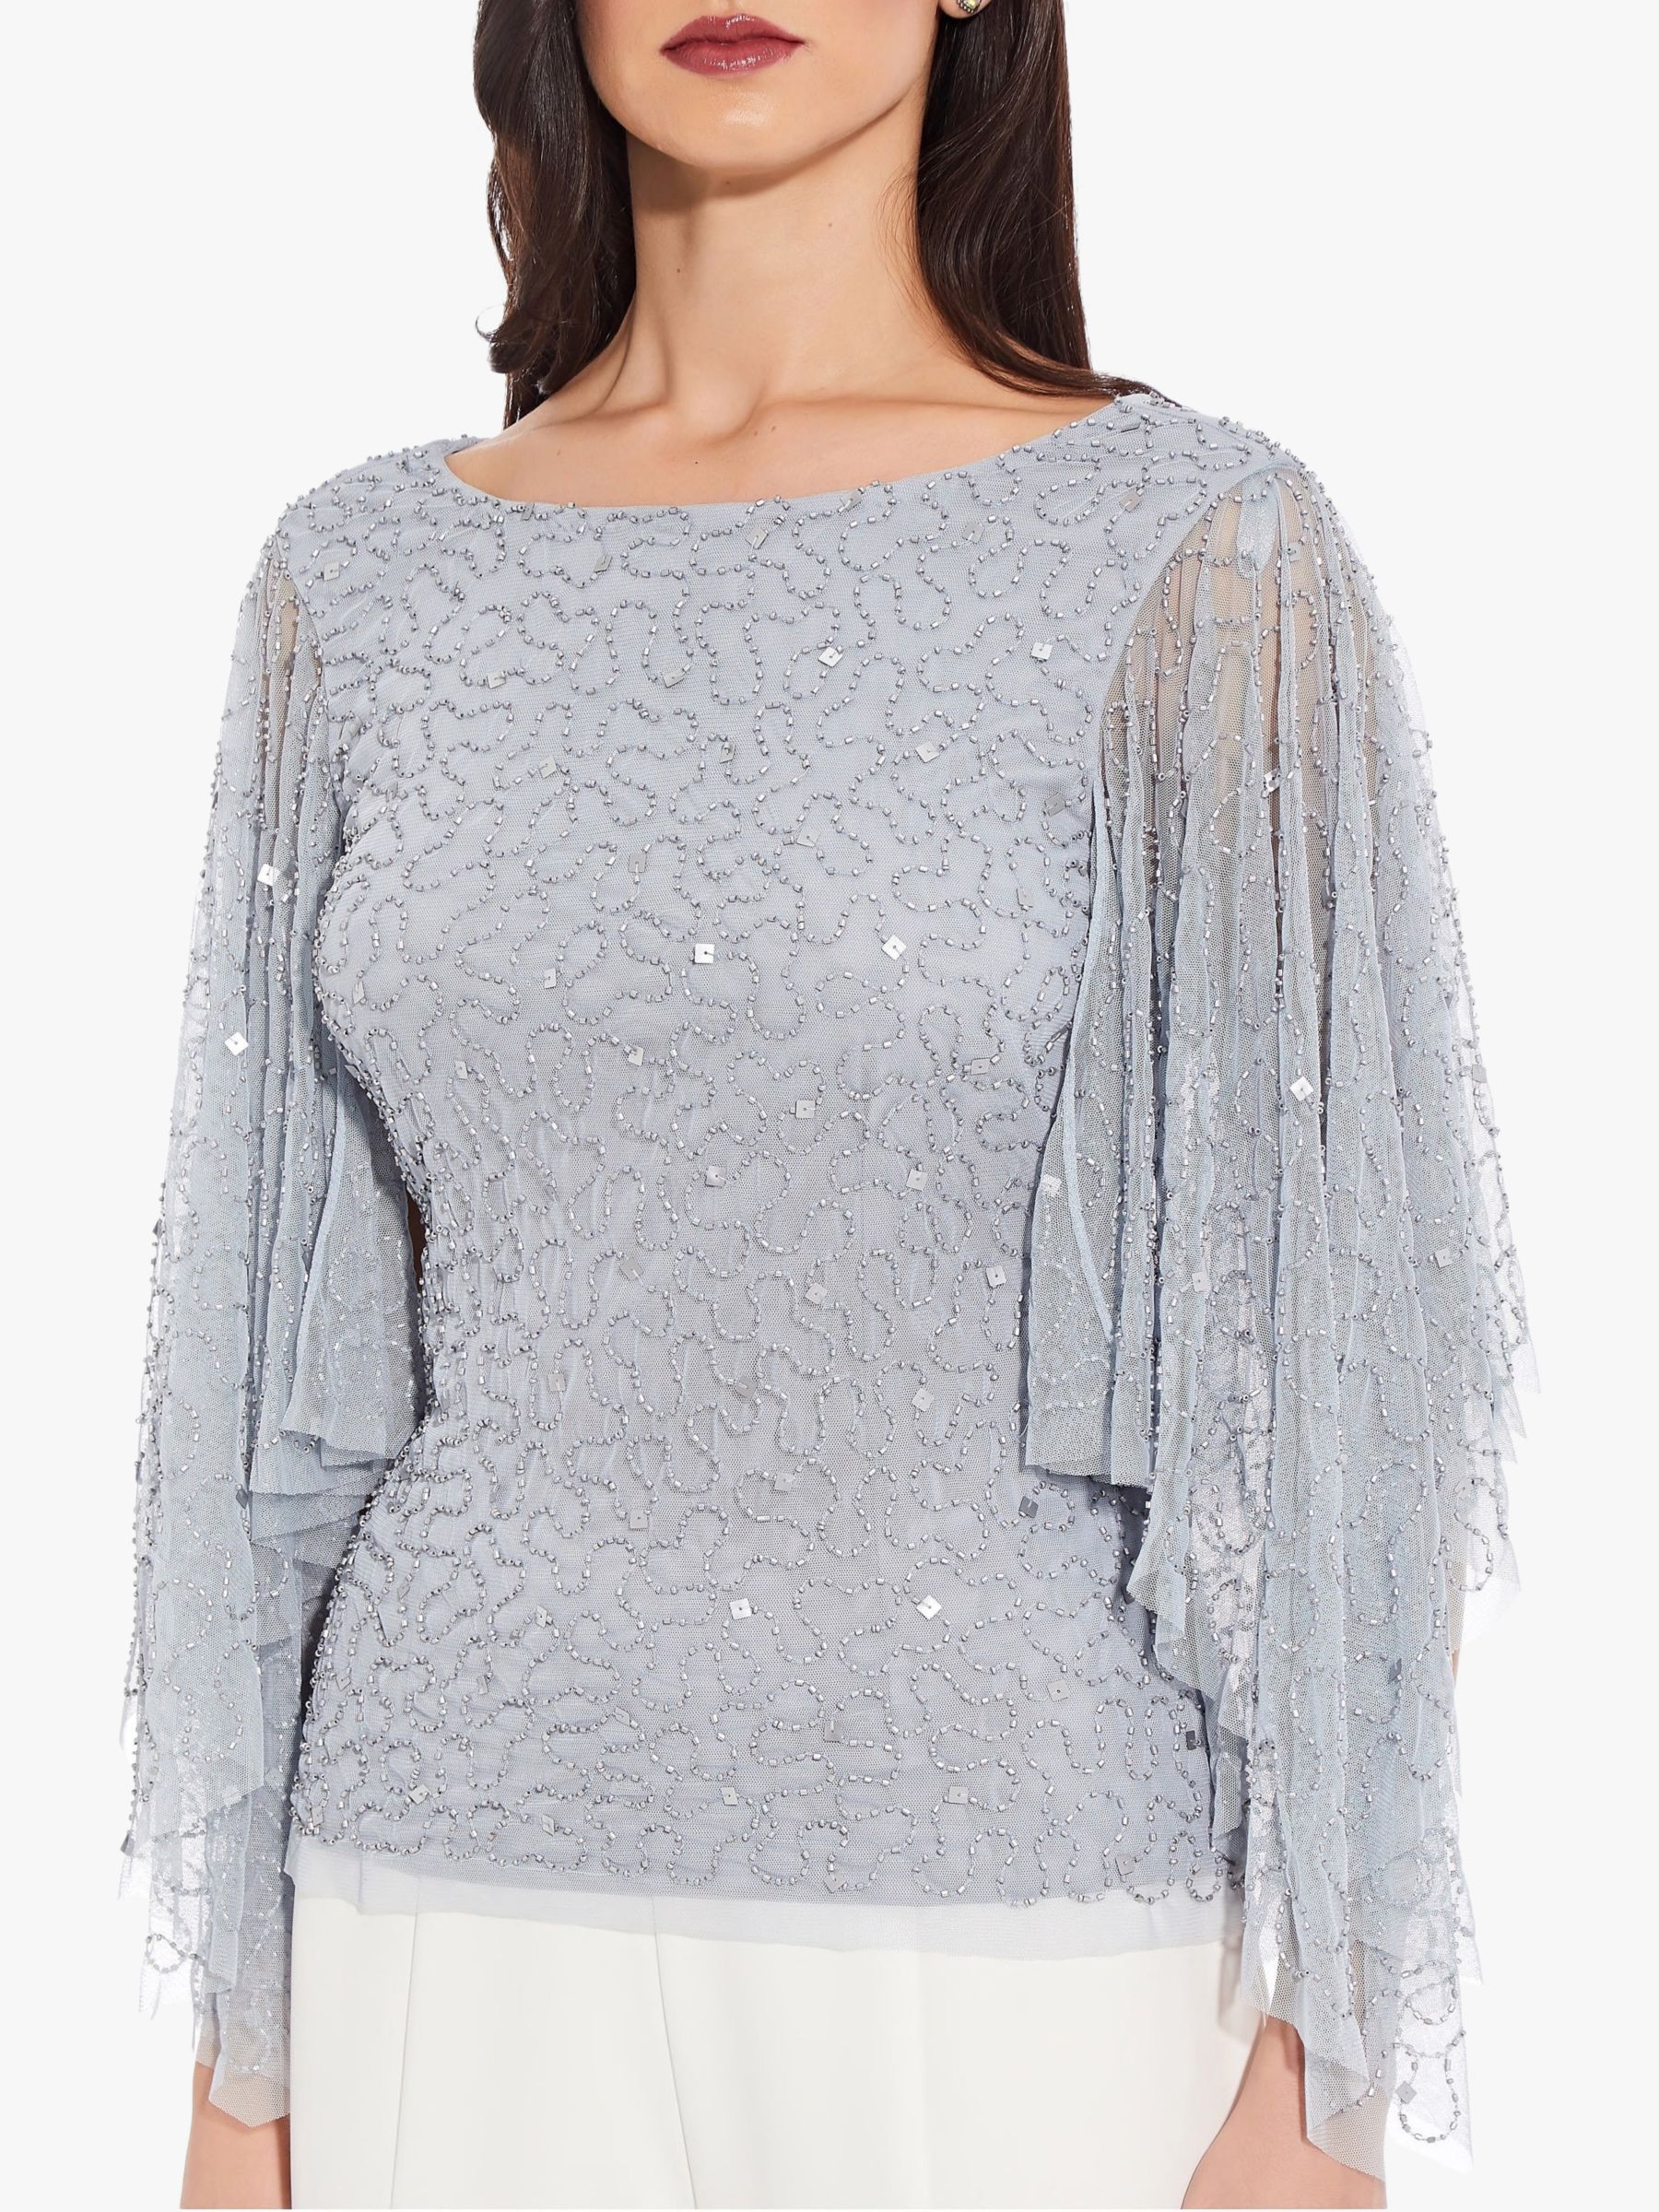 Adrianna Papell Adrianna Papell Beaded Long Flutter Sleeve Top, Heather Blue